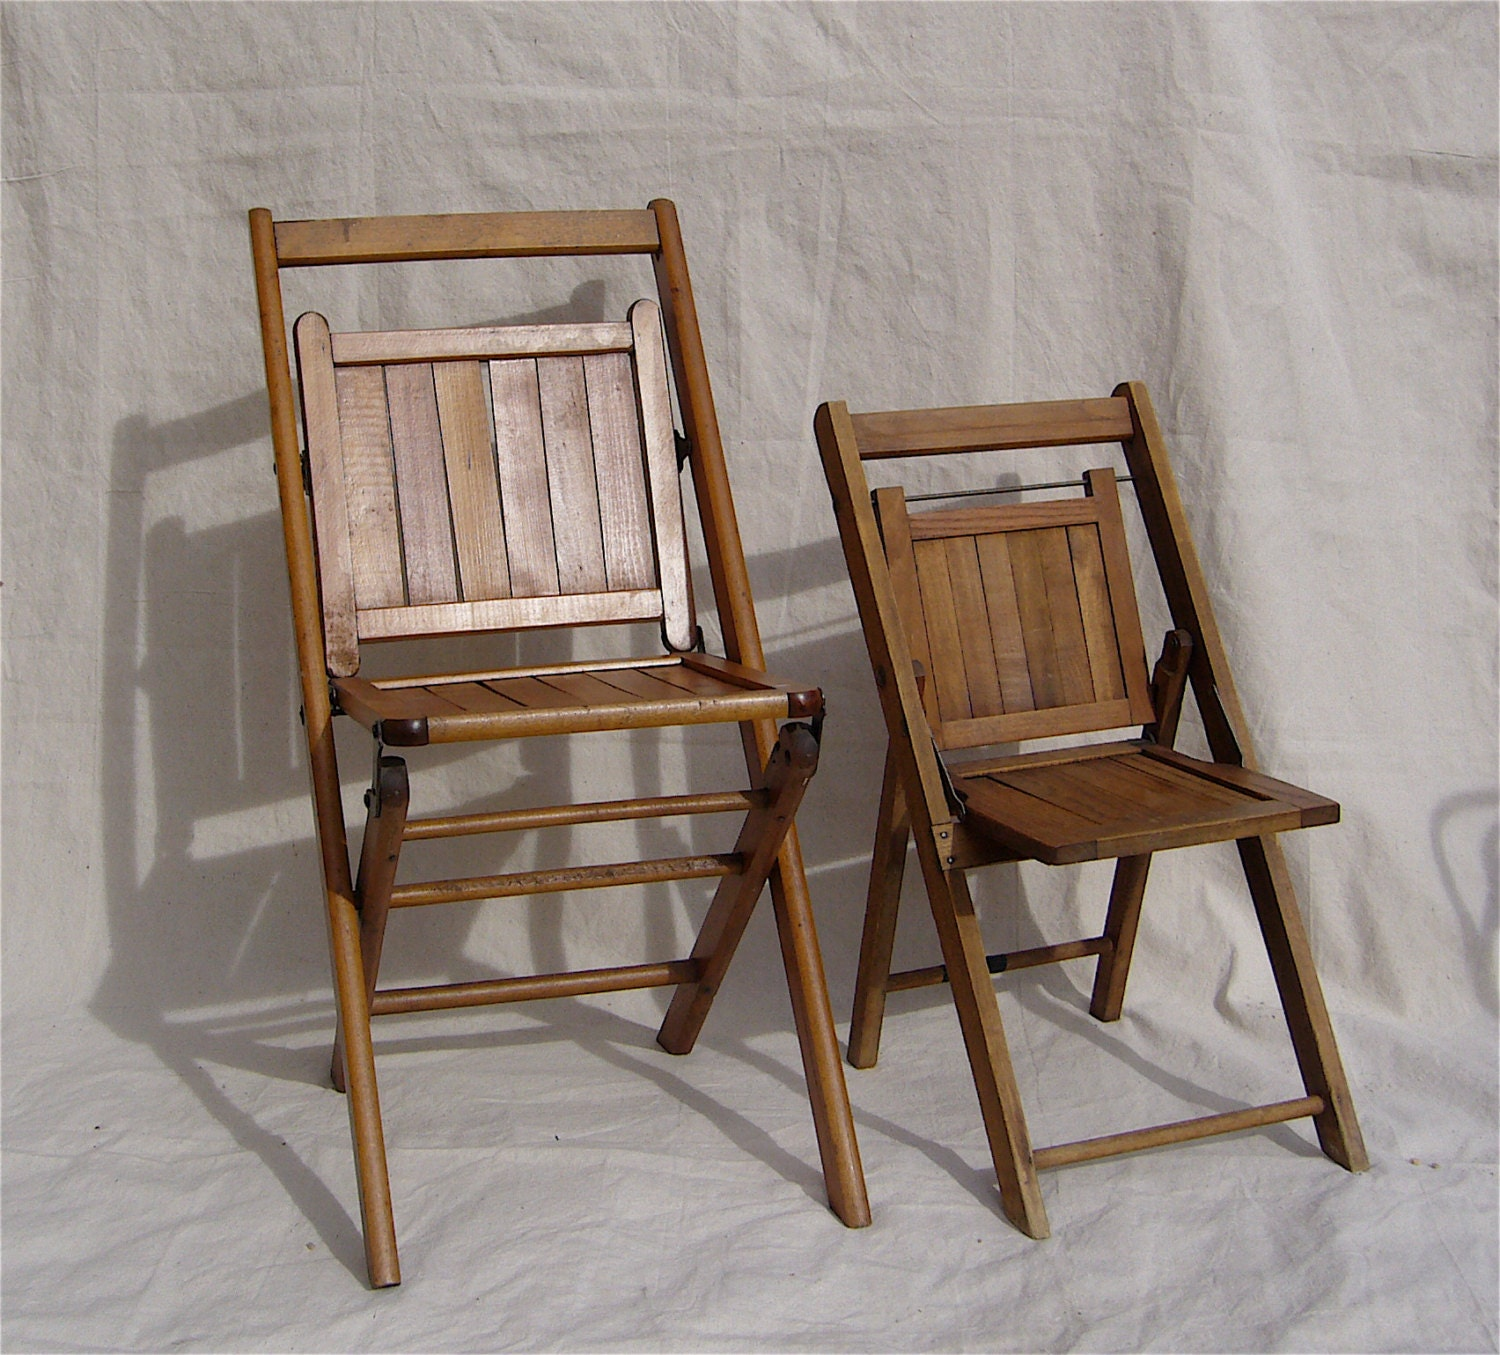 Wood Folding Chairs ~ Antique folding chairs wood slat pair adult child sized c